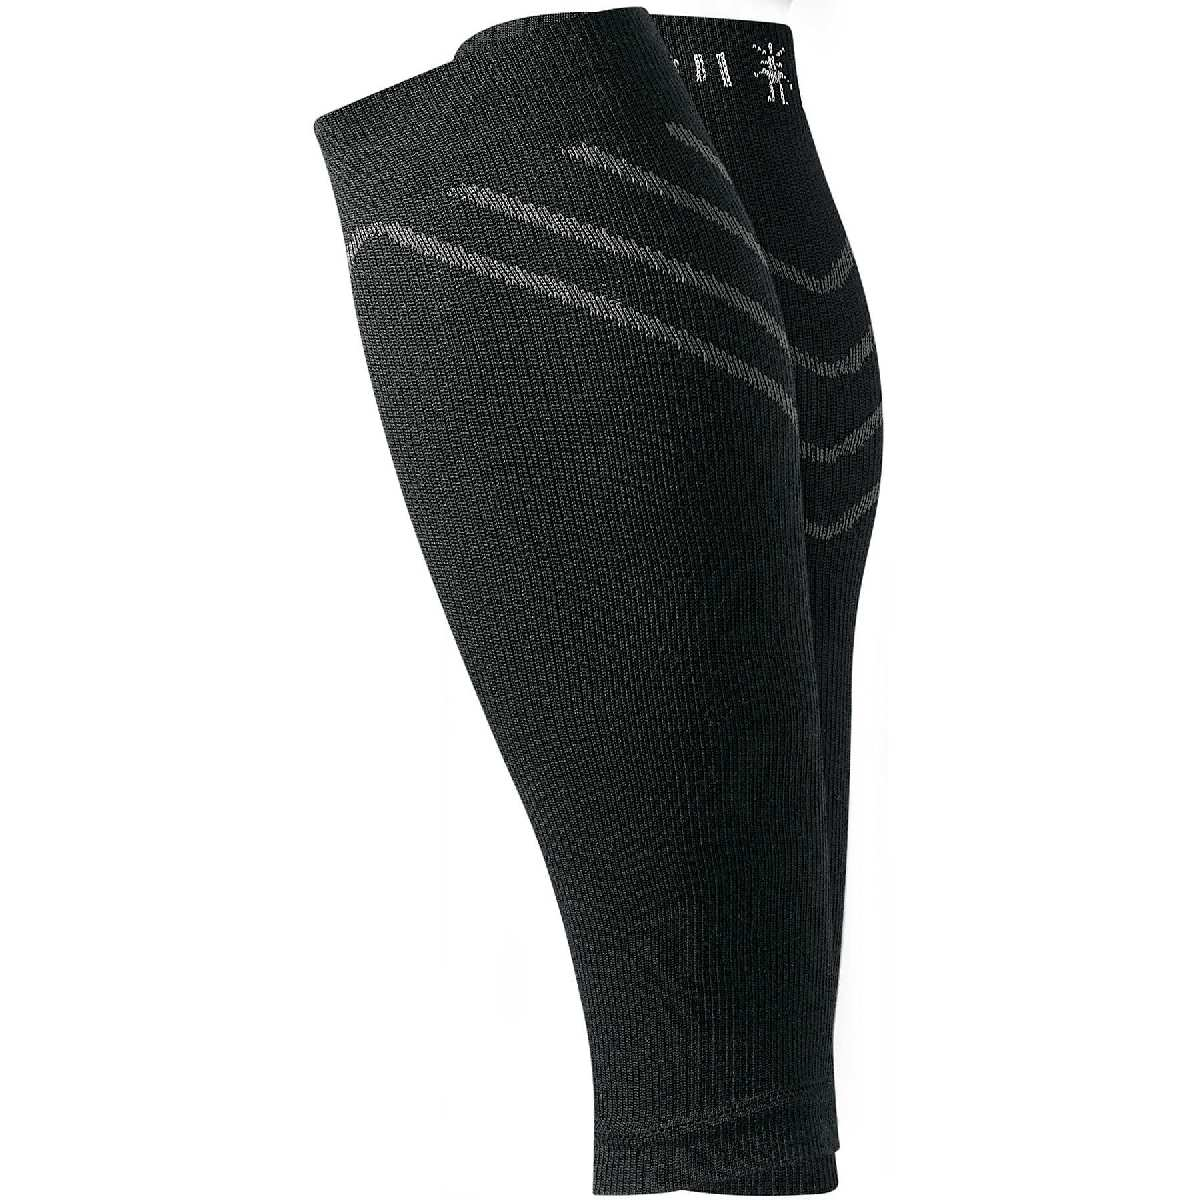 SmartWool PhD Compression Calf Sleeve Size S Black U.S.A. & Canada